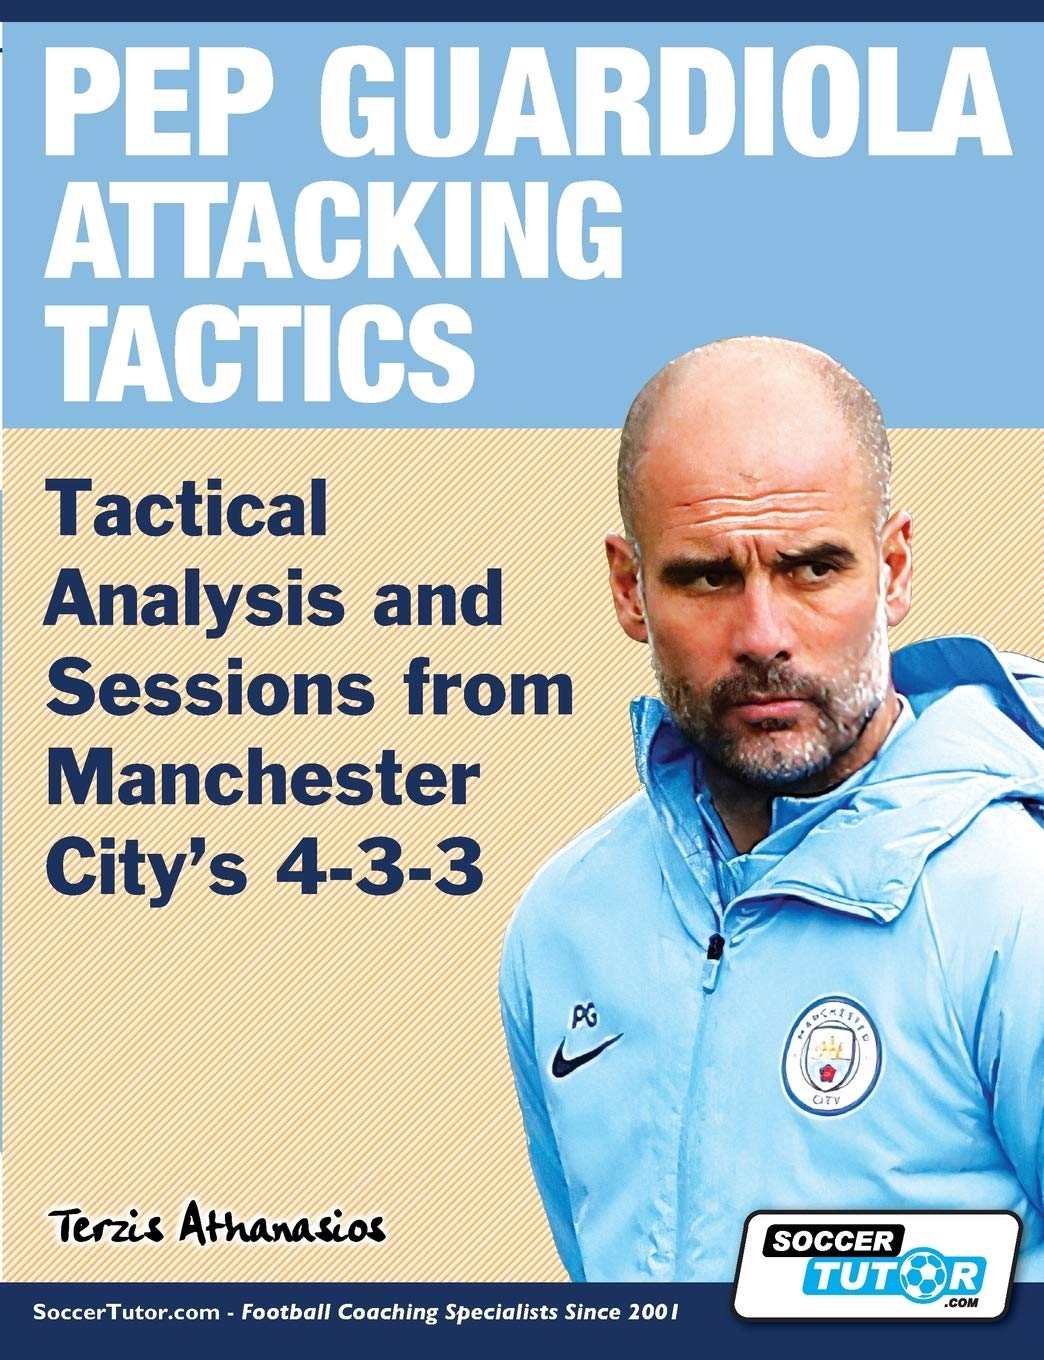 Pep Guardiola Attacking Tactics - Tactical Analysis and Sessions from  Manchester City's 4-3-3: Amazon.de: Terzis, Athanasios: Fremdsprachige  Bücher